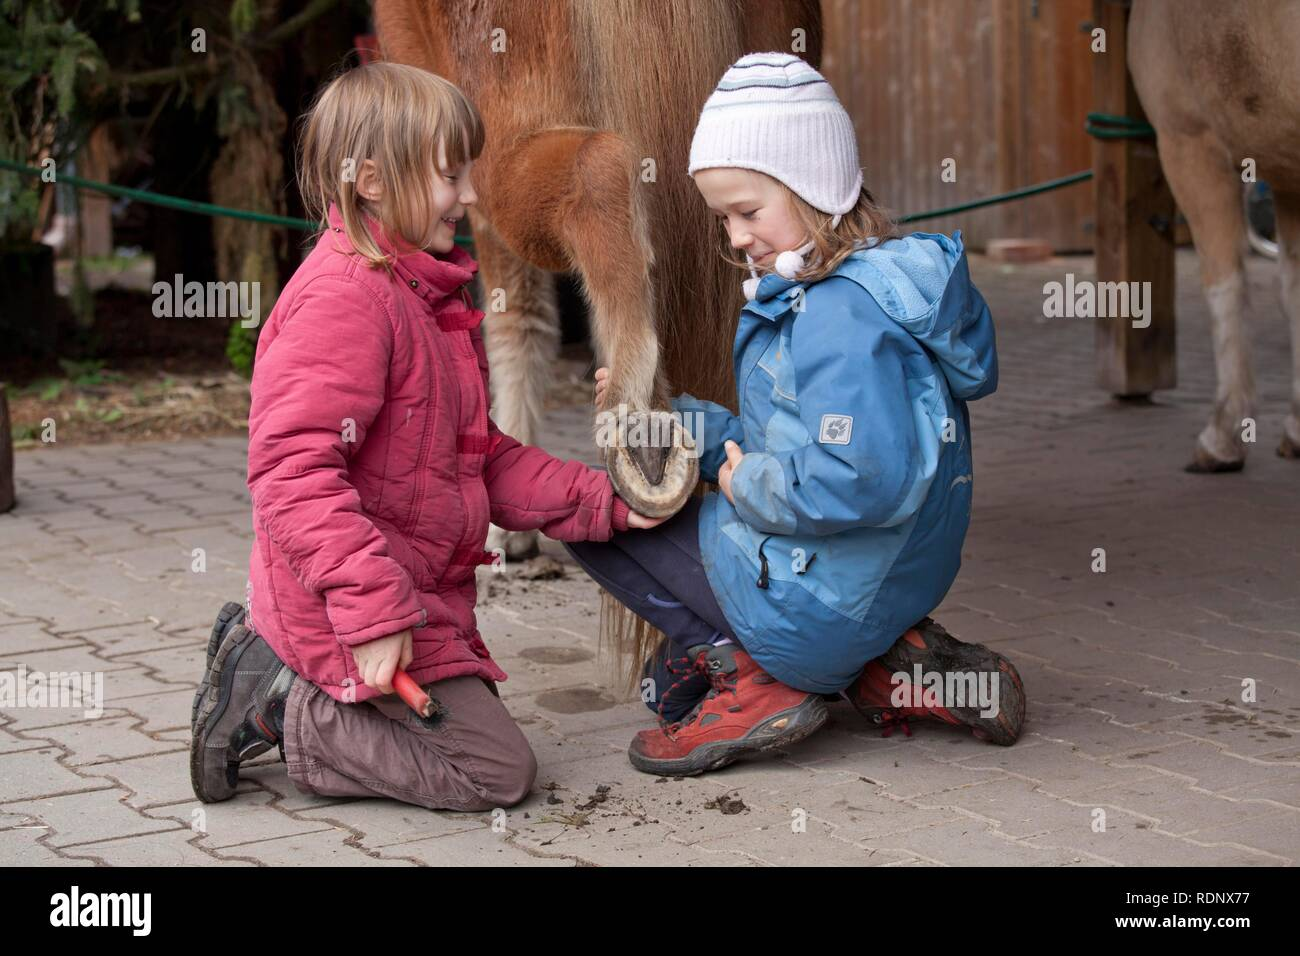 Two young girls cleaning the hooves of a pony - Stock Image